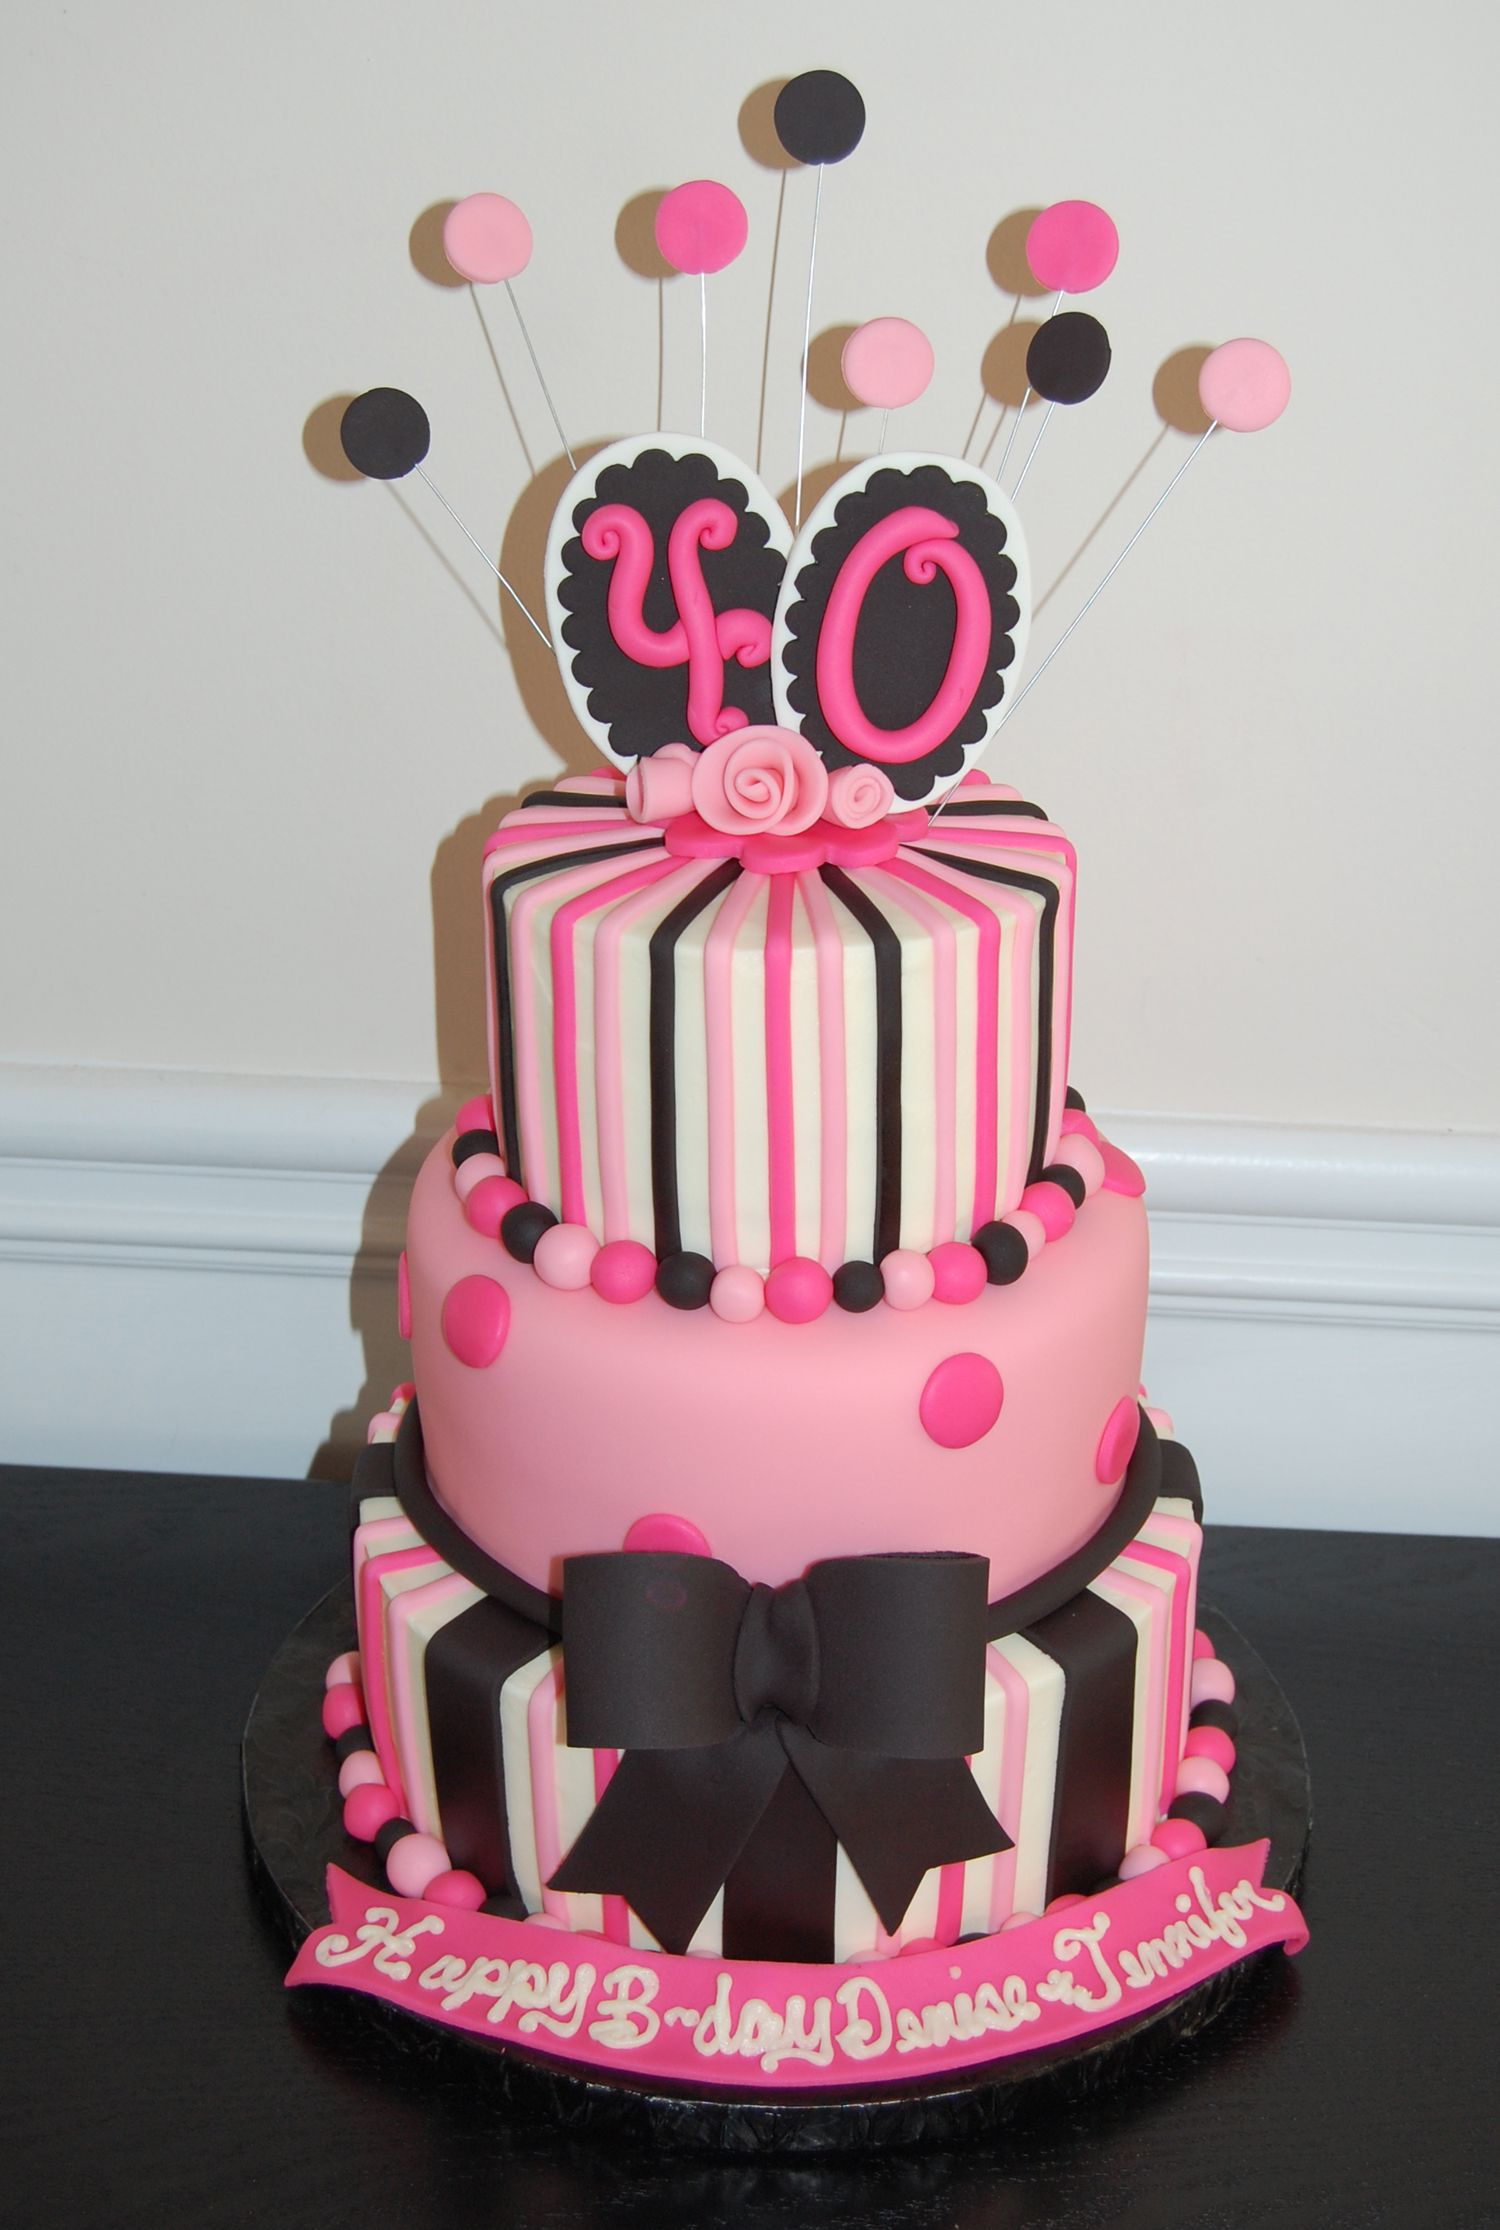 40th Birthday Cake Pink And Black 40th Birthday Cake In Pink And Black